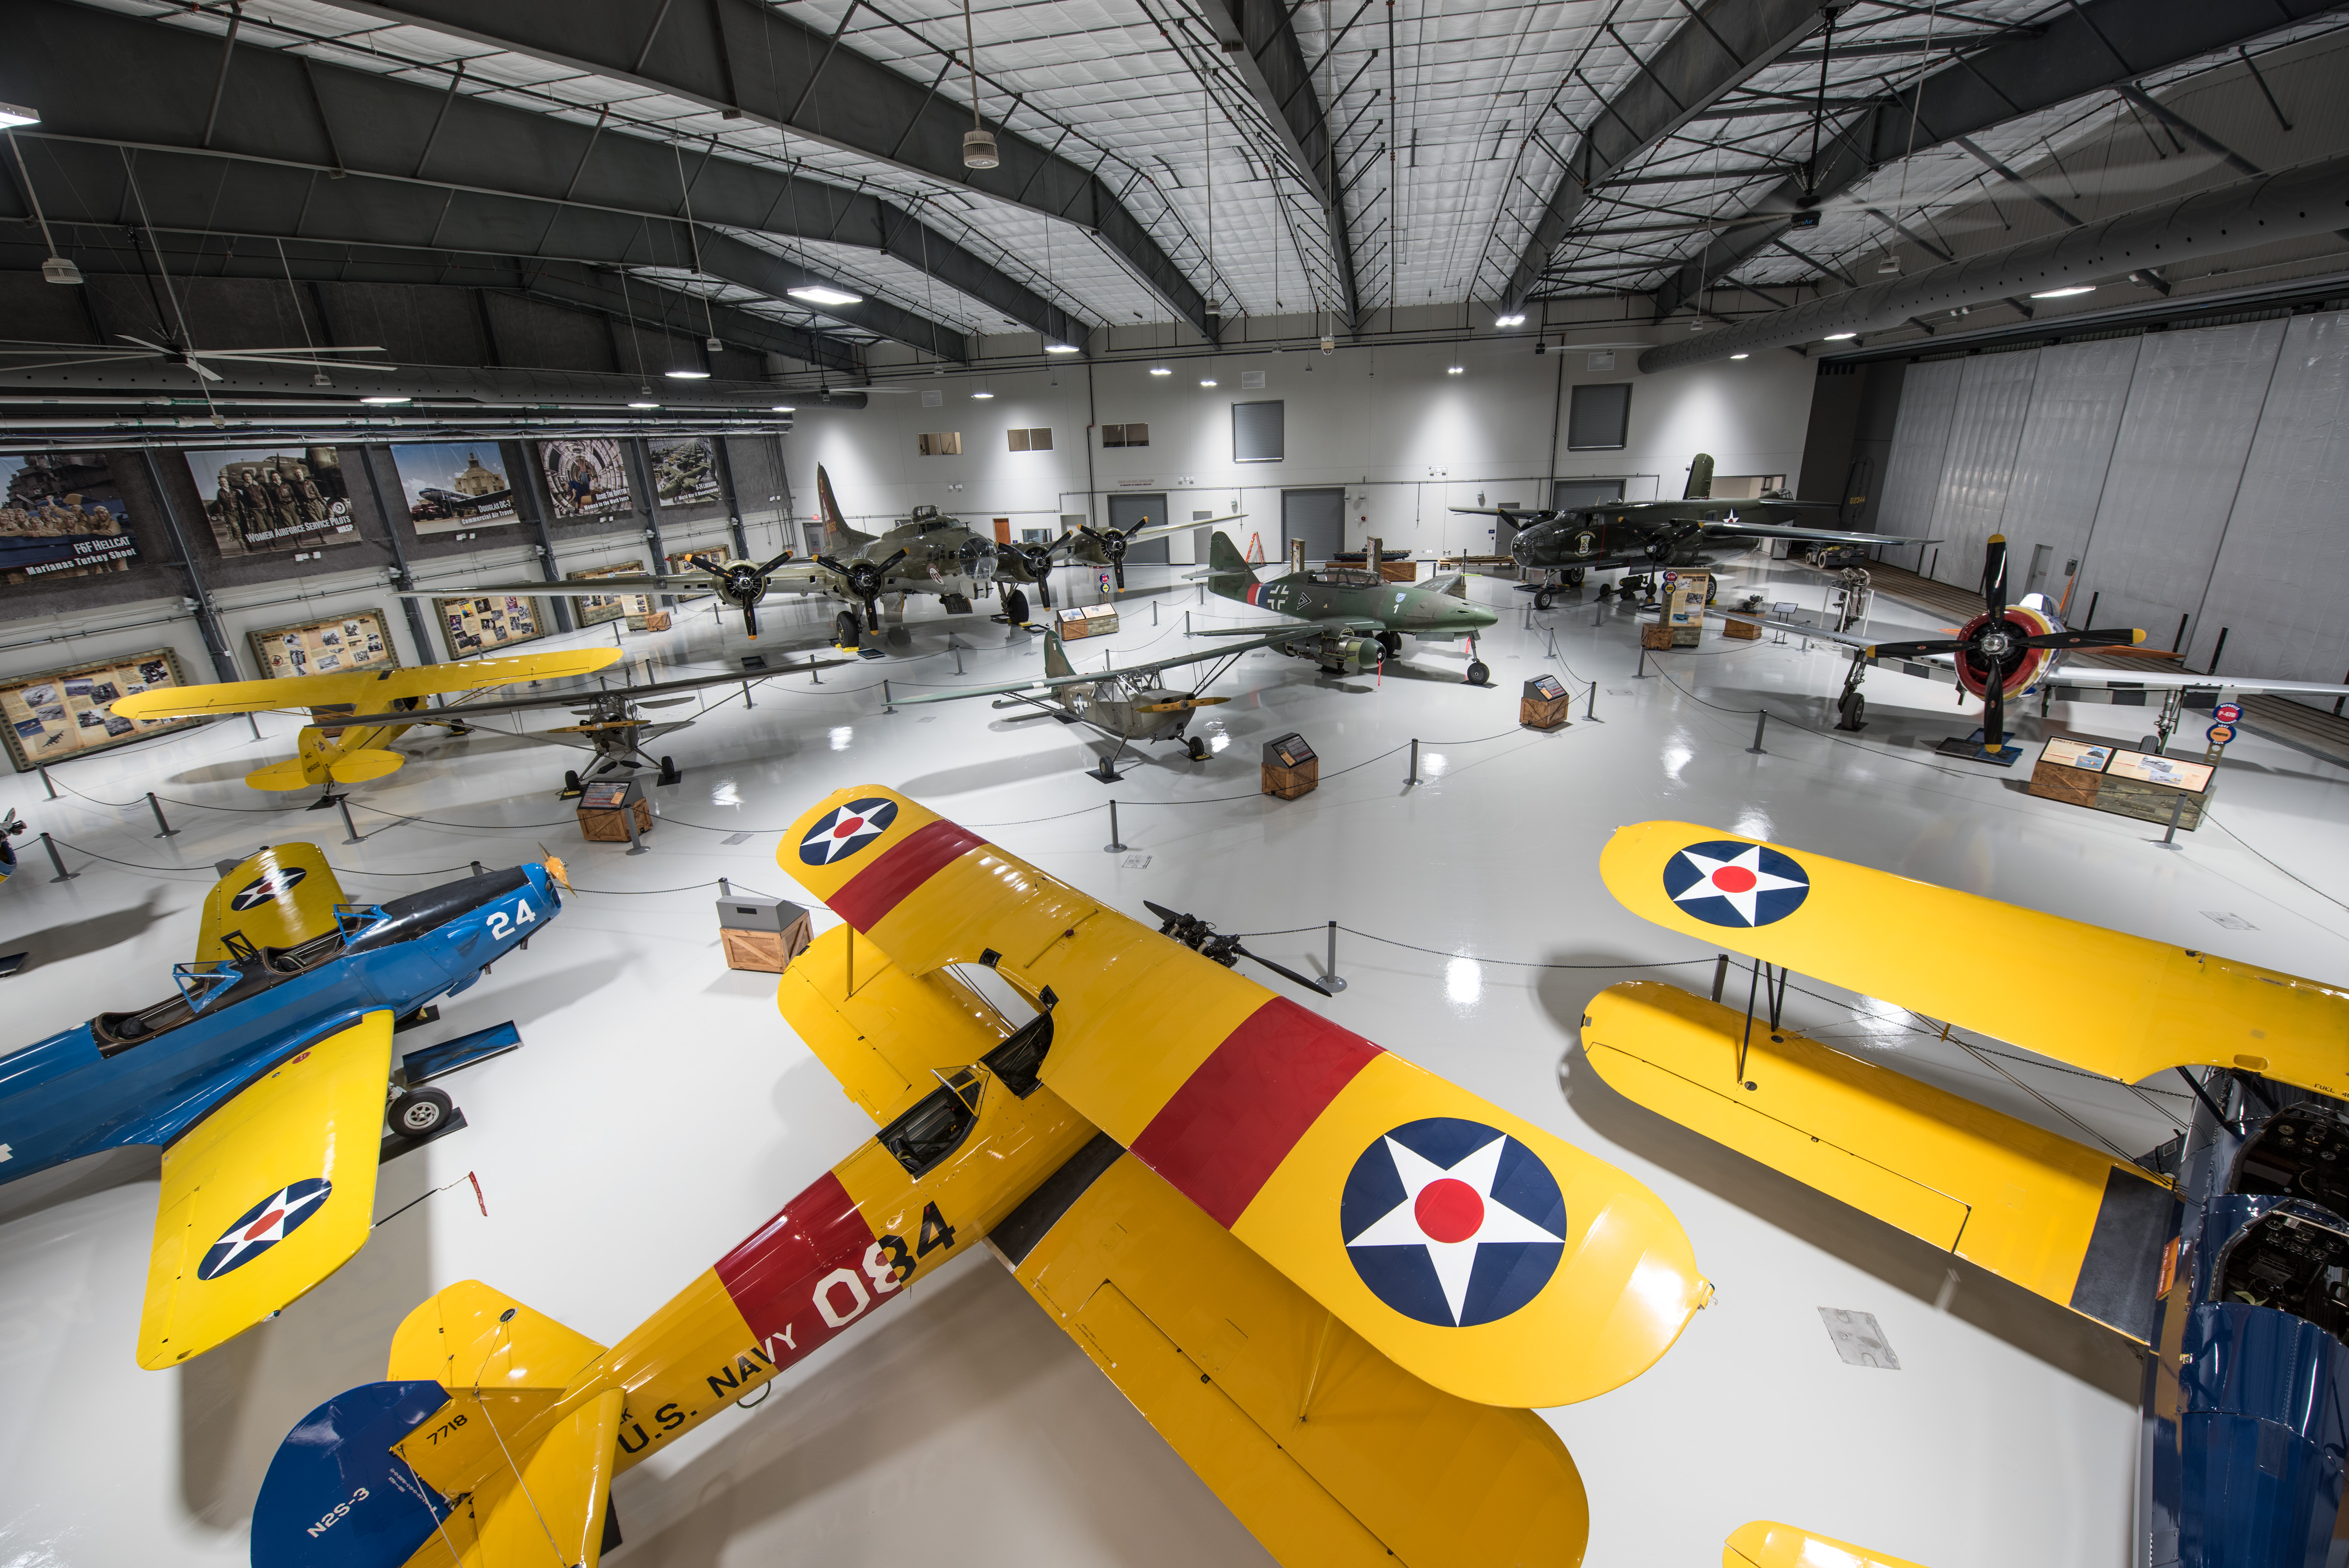 Lone Star Flight Museum offers top gunned aviation experience